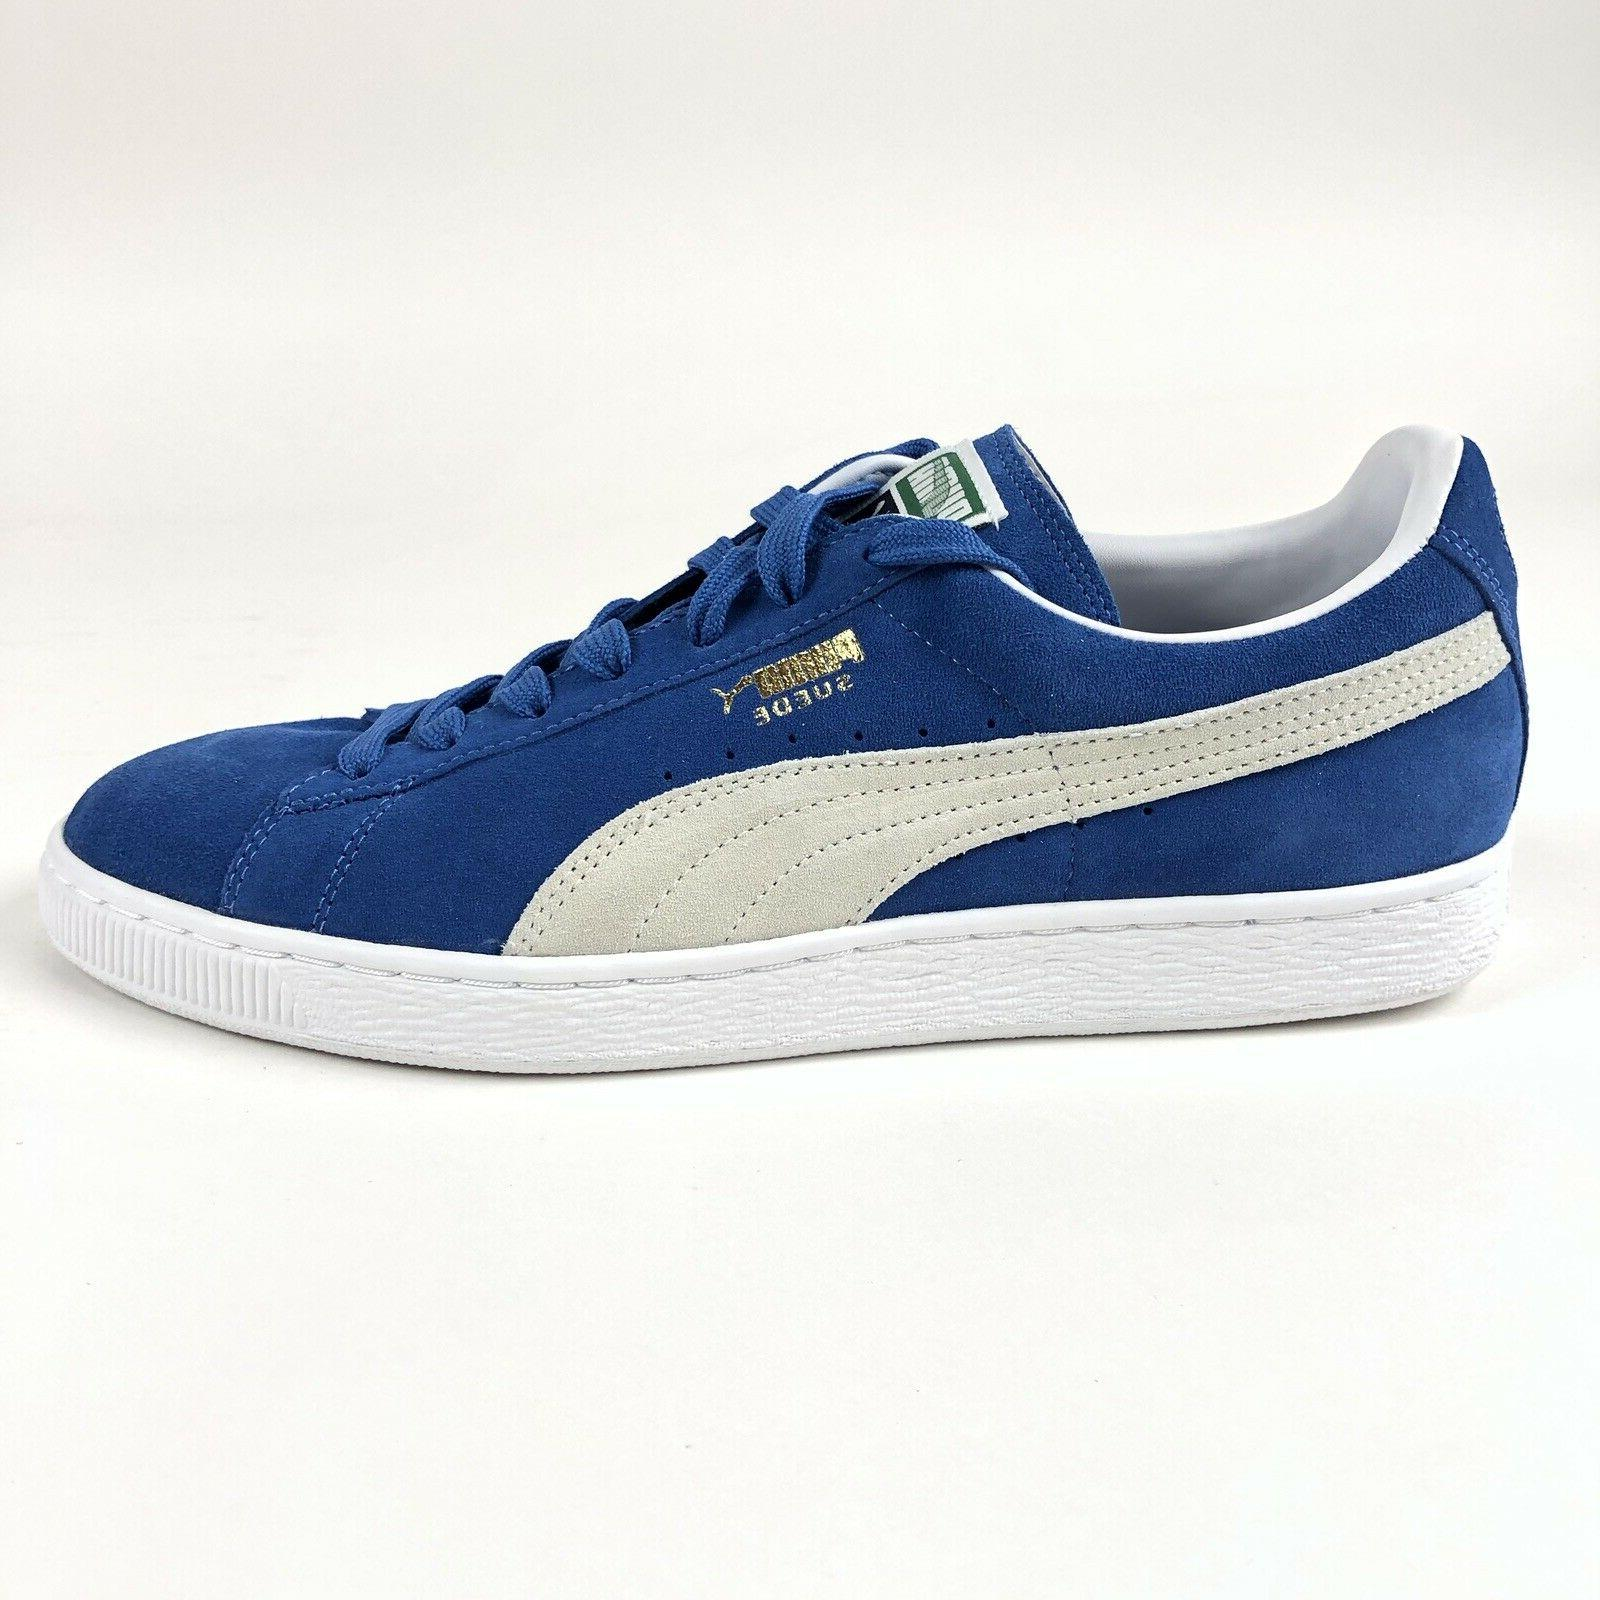 suede classic olympia blue low tennis shoes